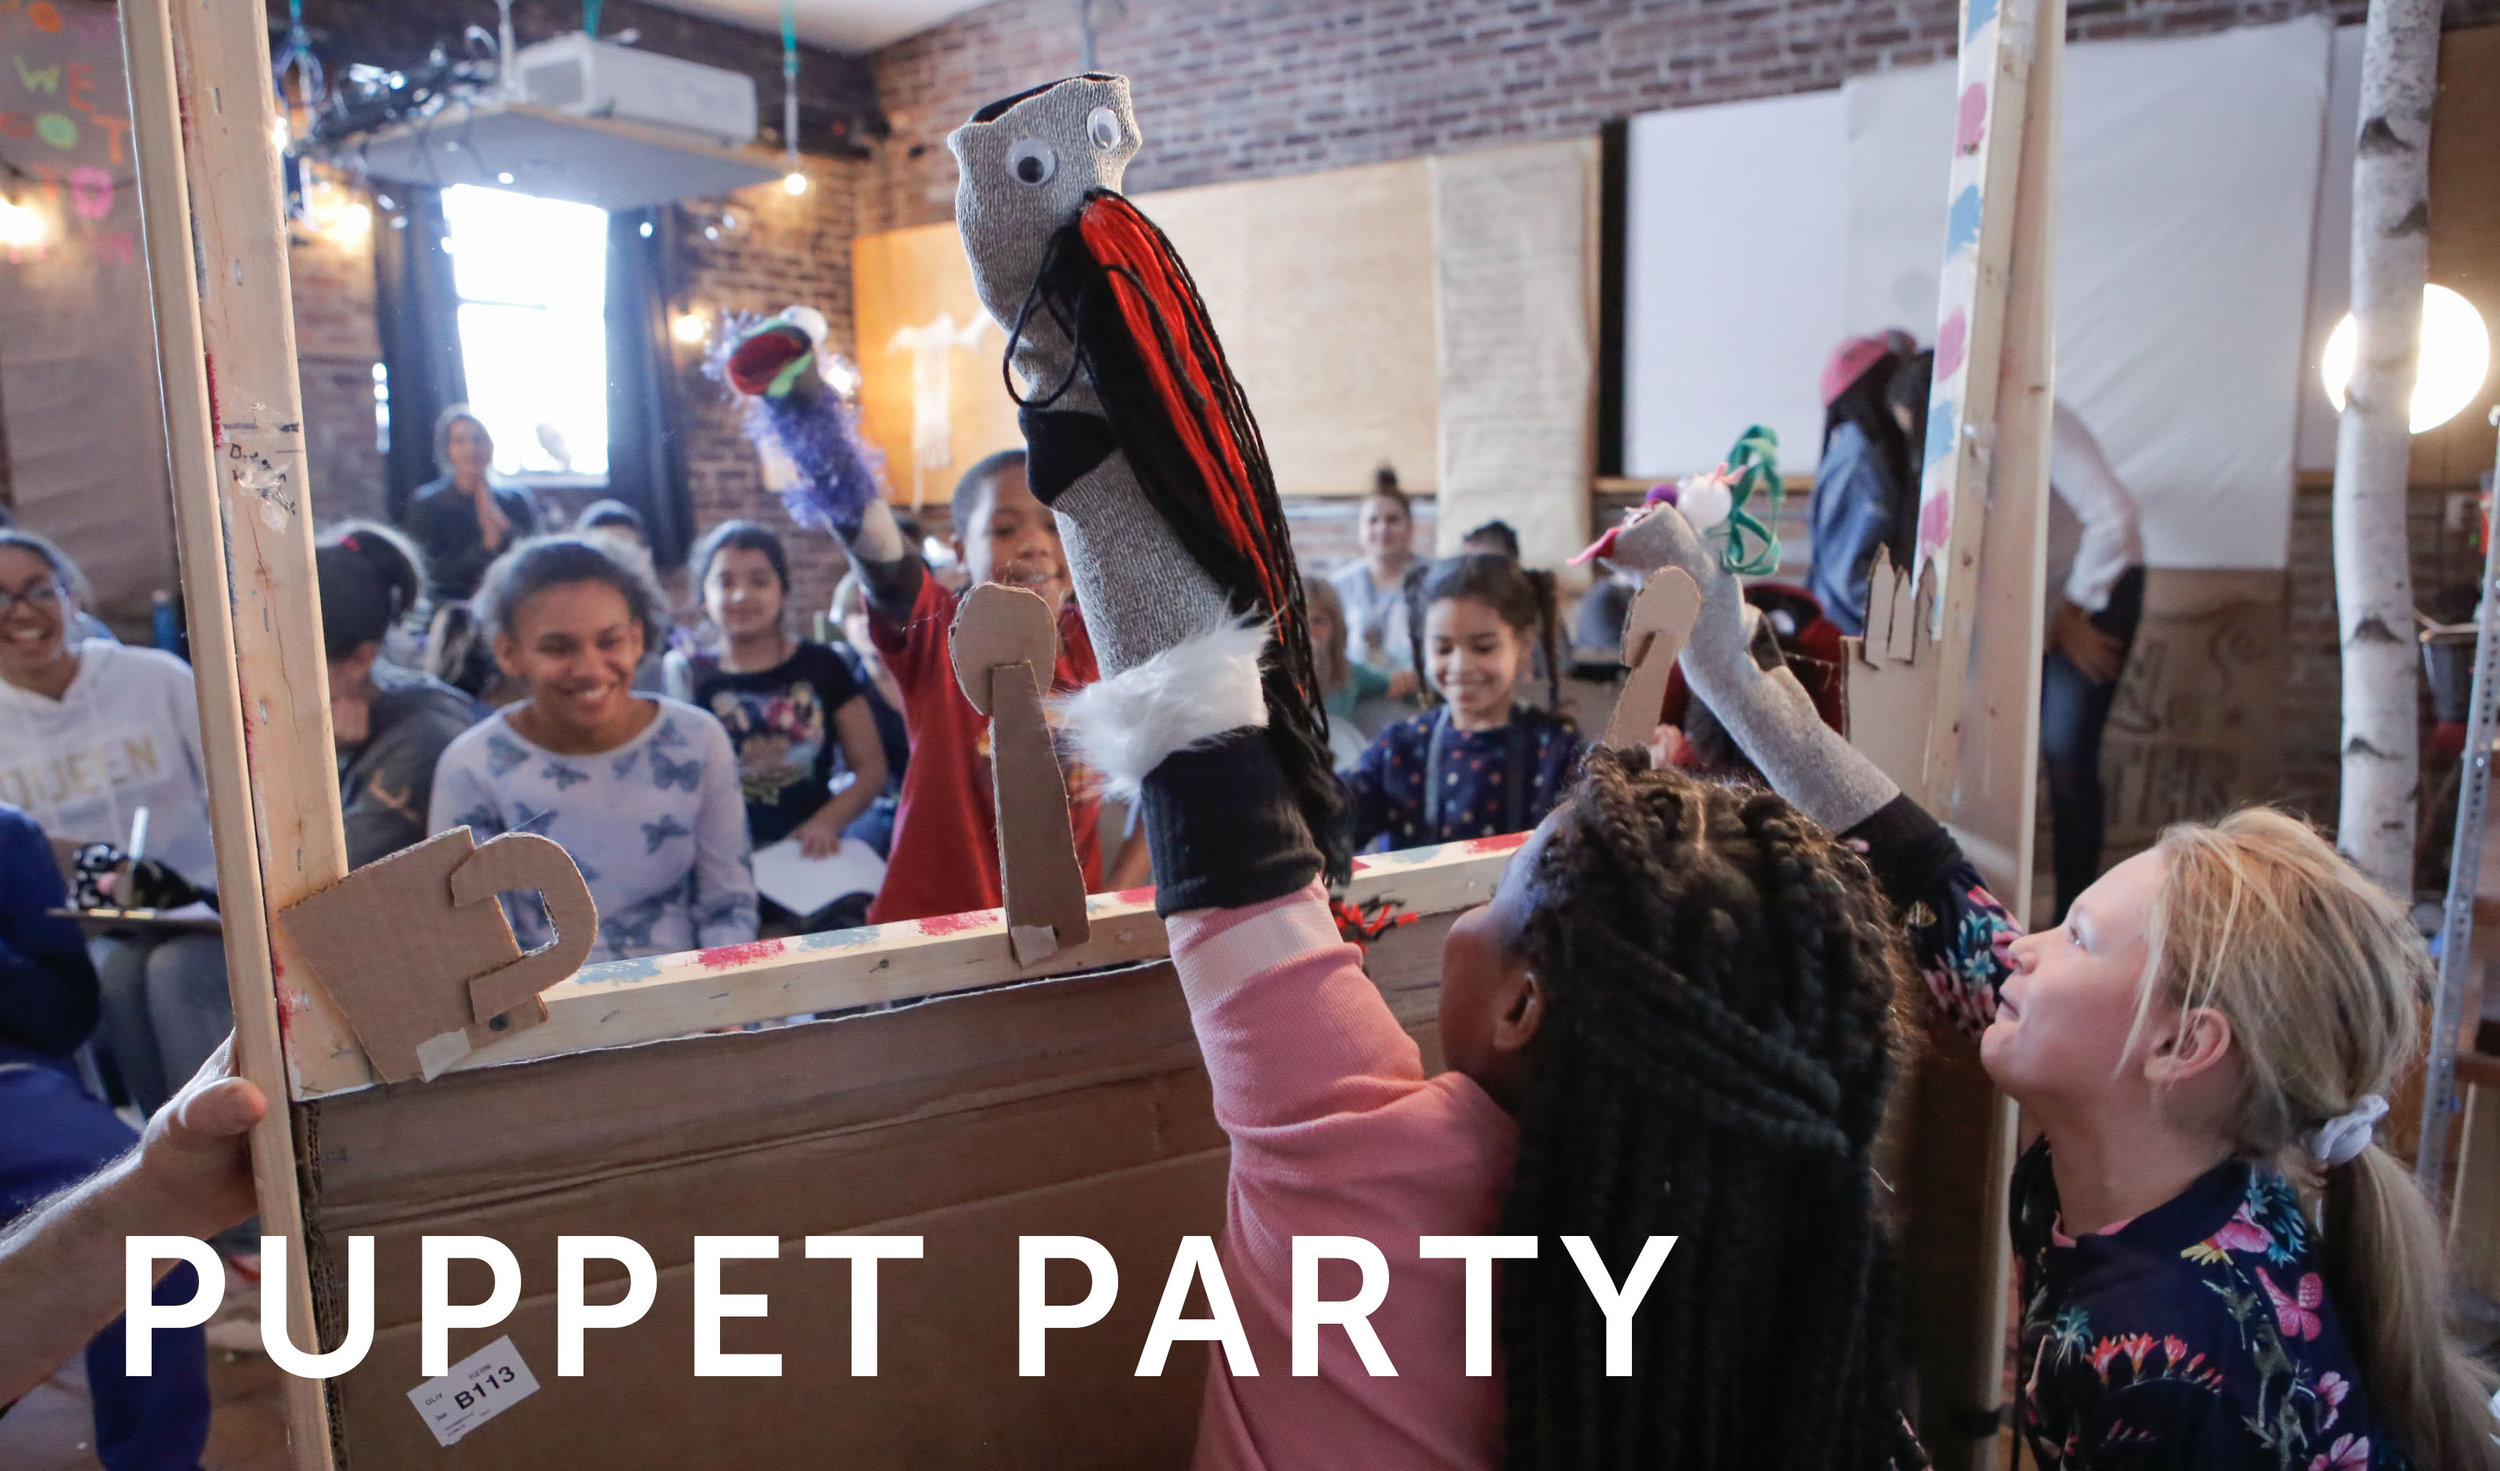 PuppetParty4.jpg